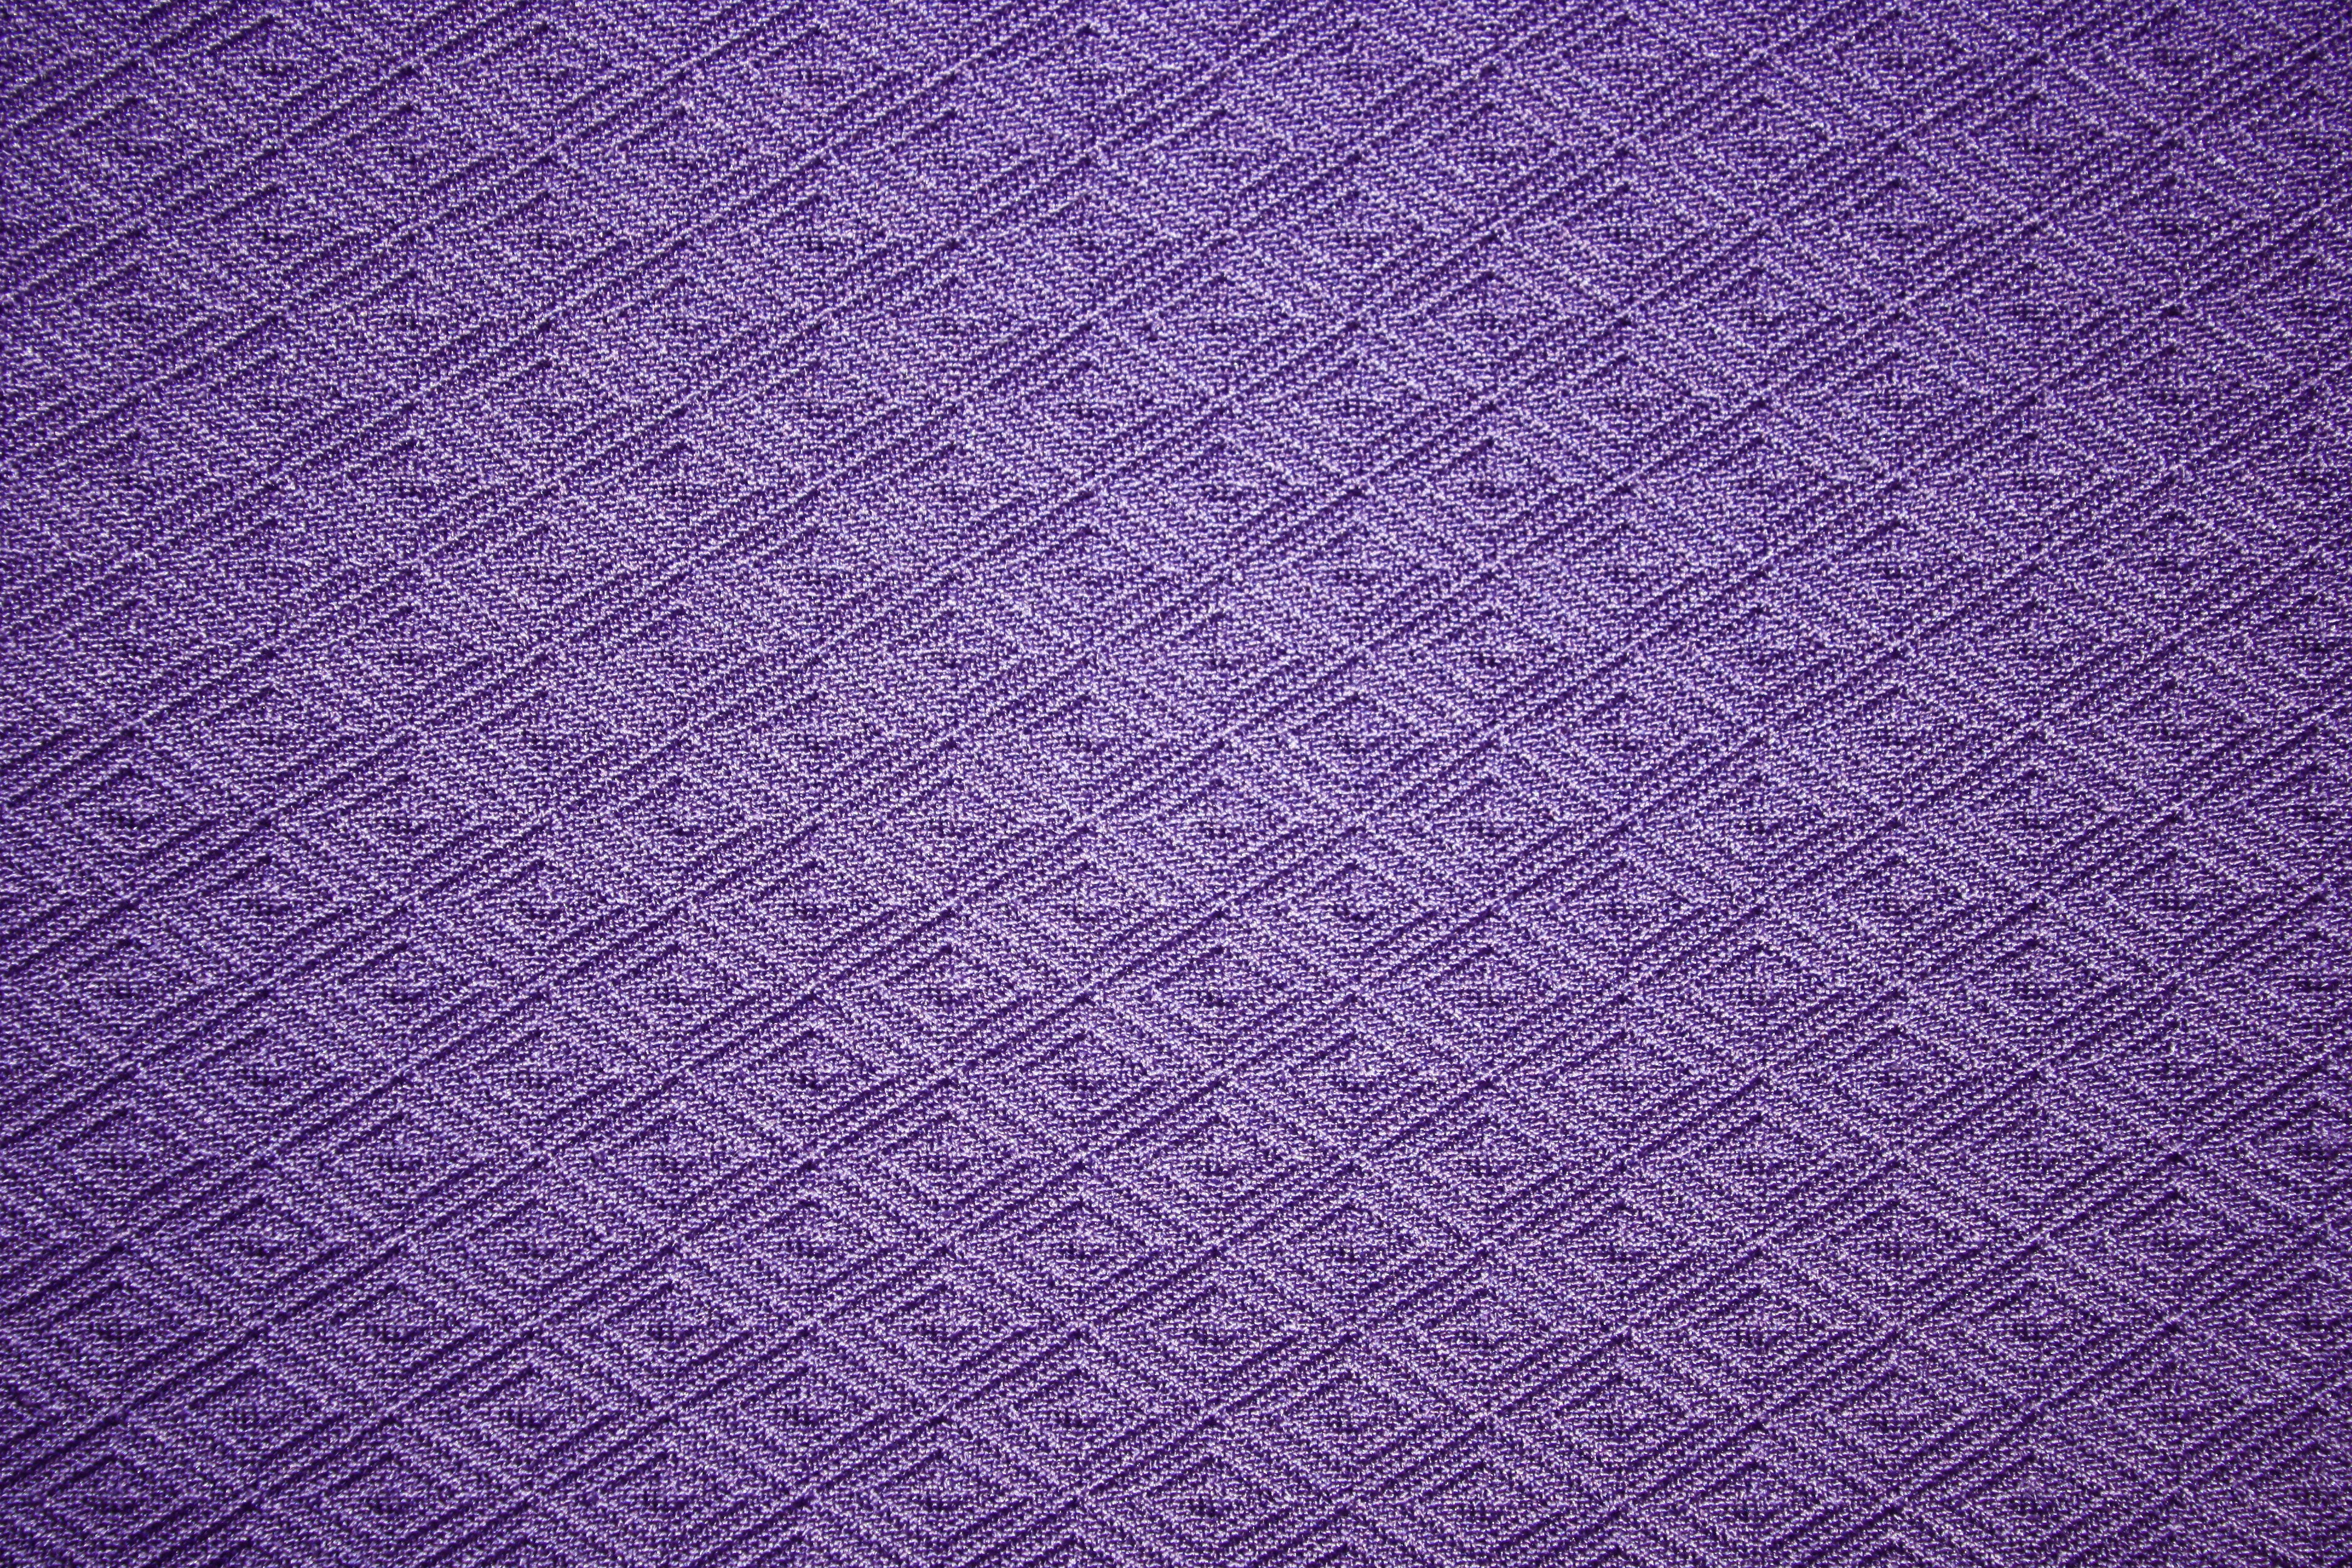 Pattern Knit Fabric : Violet Knit Fabric with Diamond Pattern Texture Picture Free Photograph P...